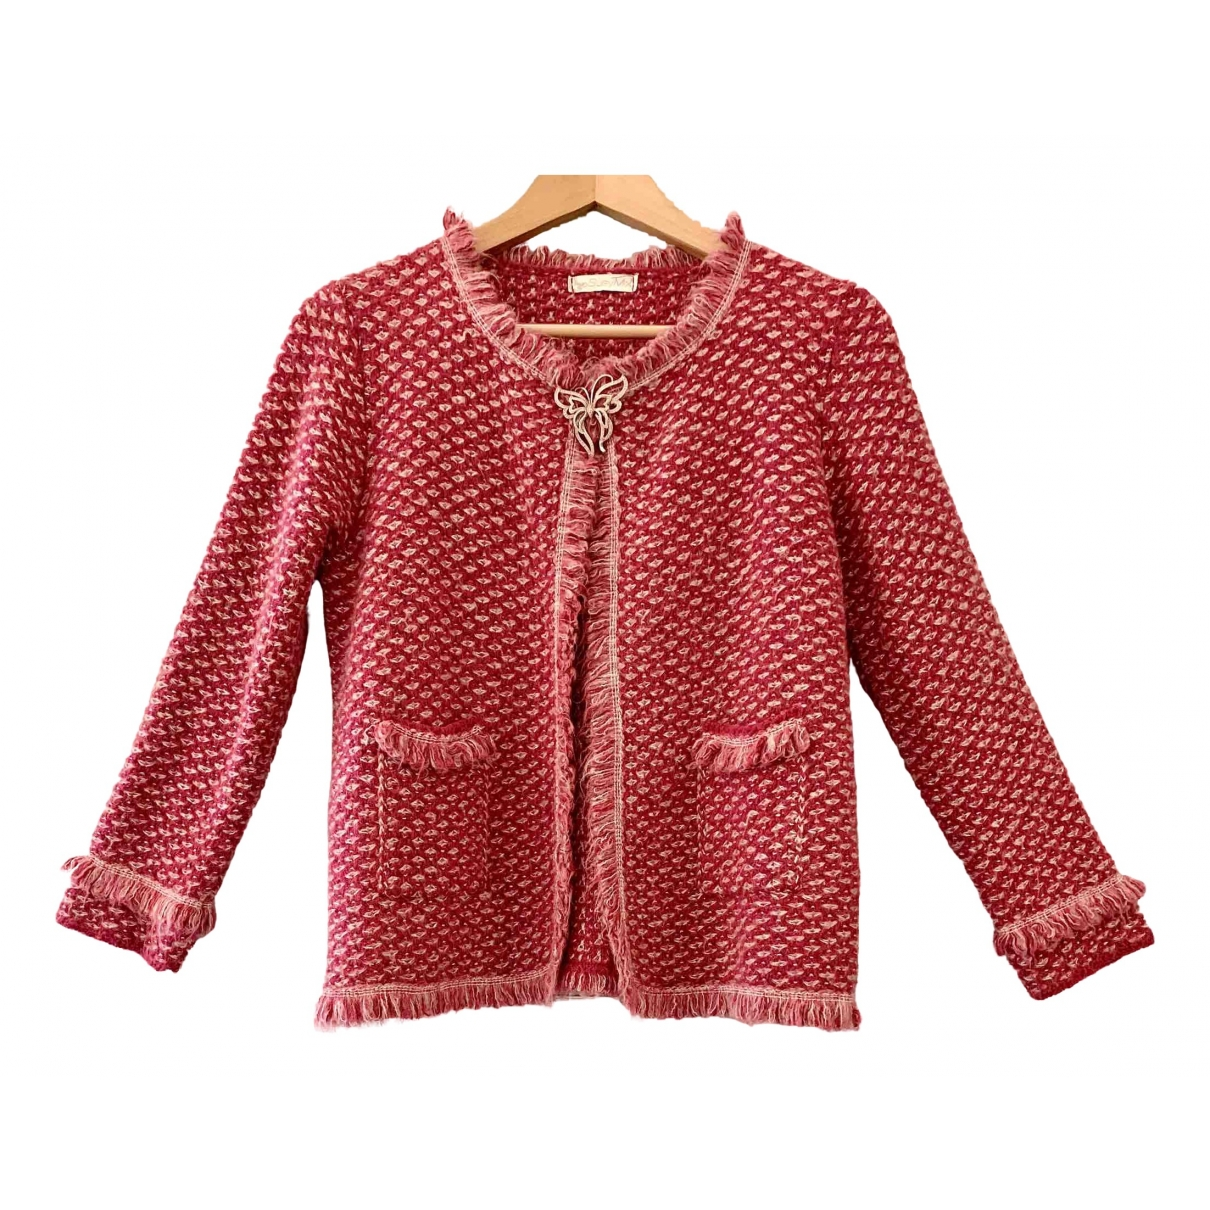 Non Signe / Unsigned \N Jacke in  Rosa Wolle